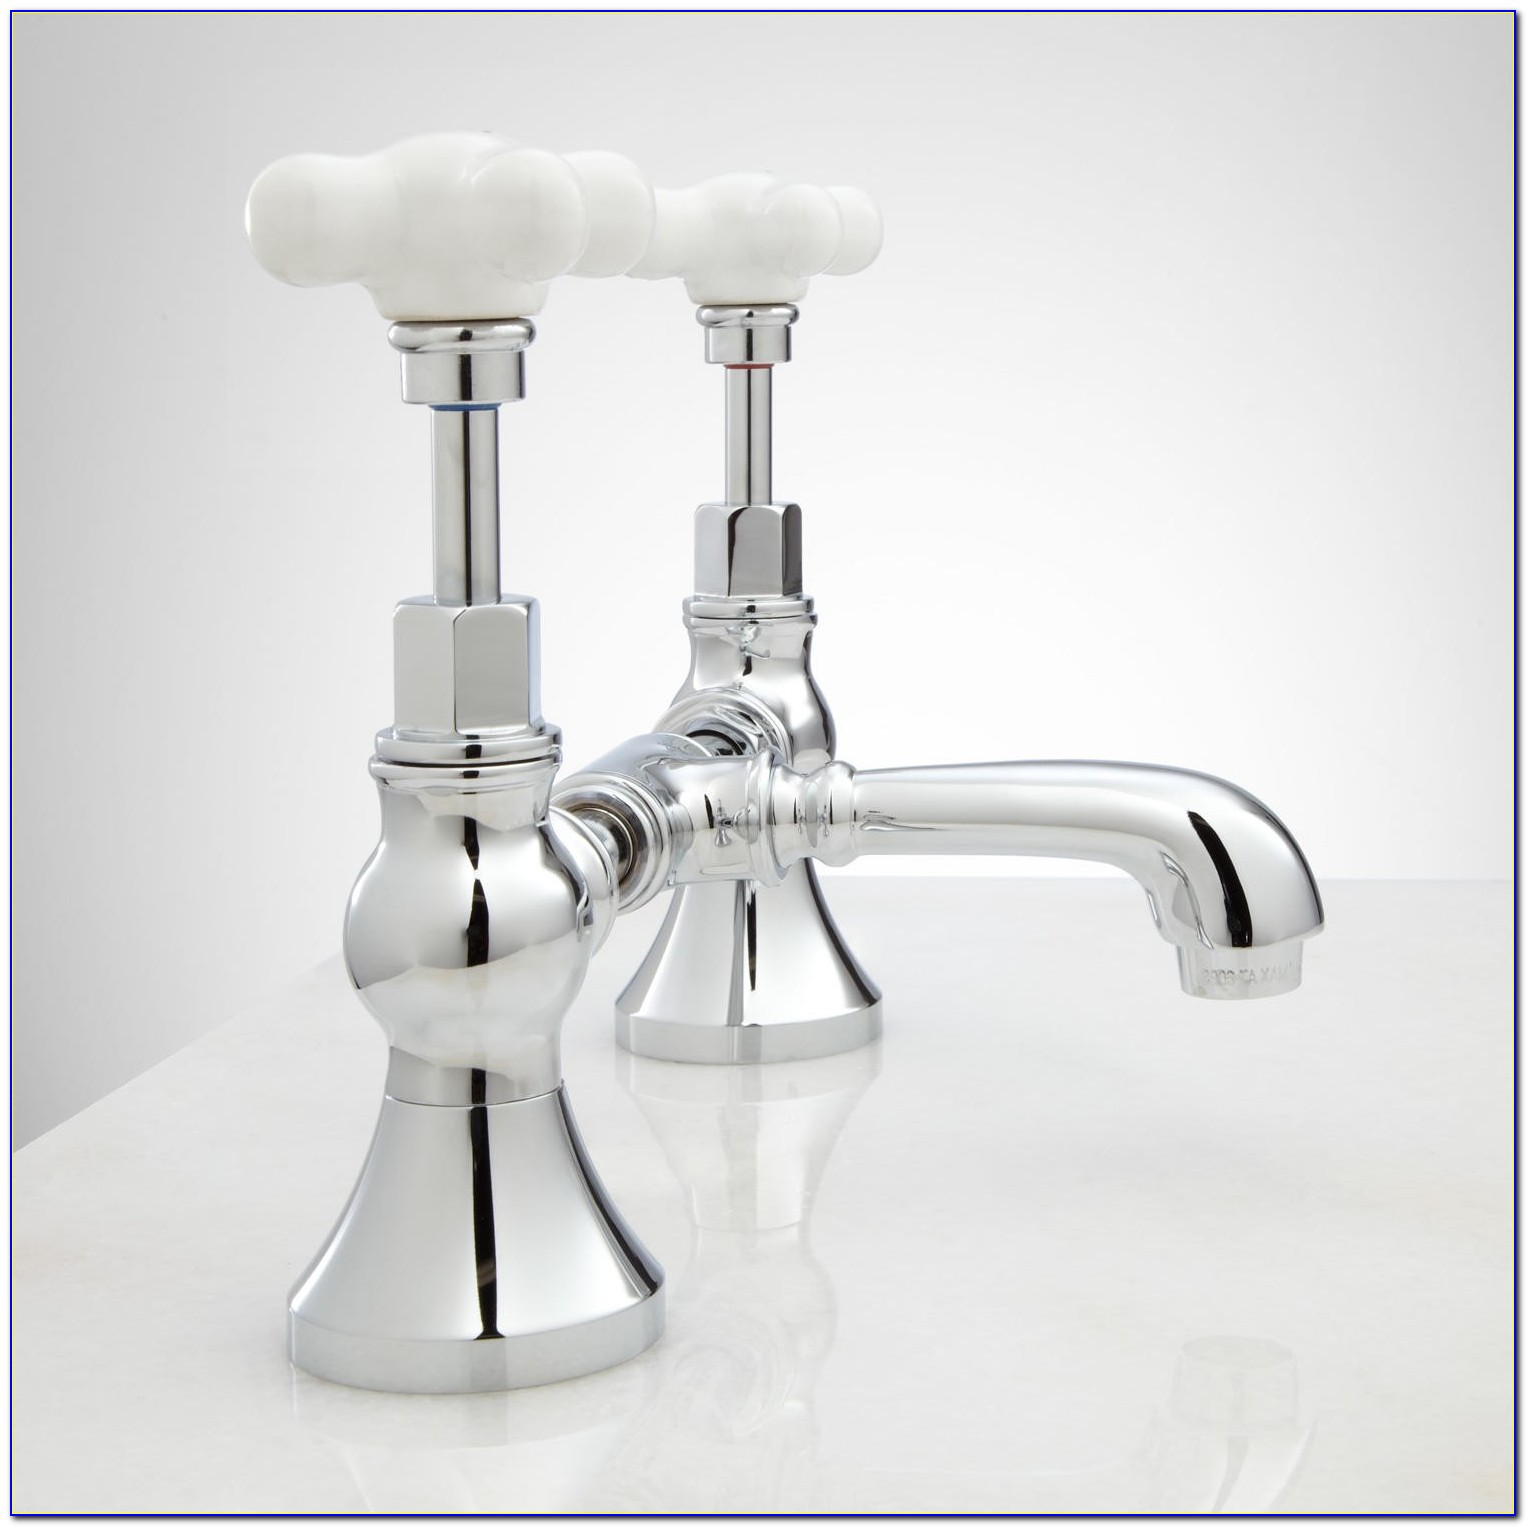 Porcelain Cross Handle Tub Shower Faucet